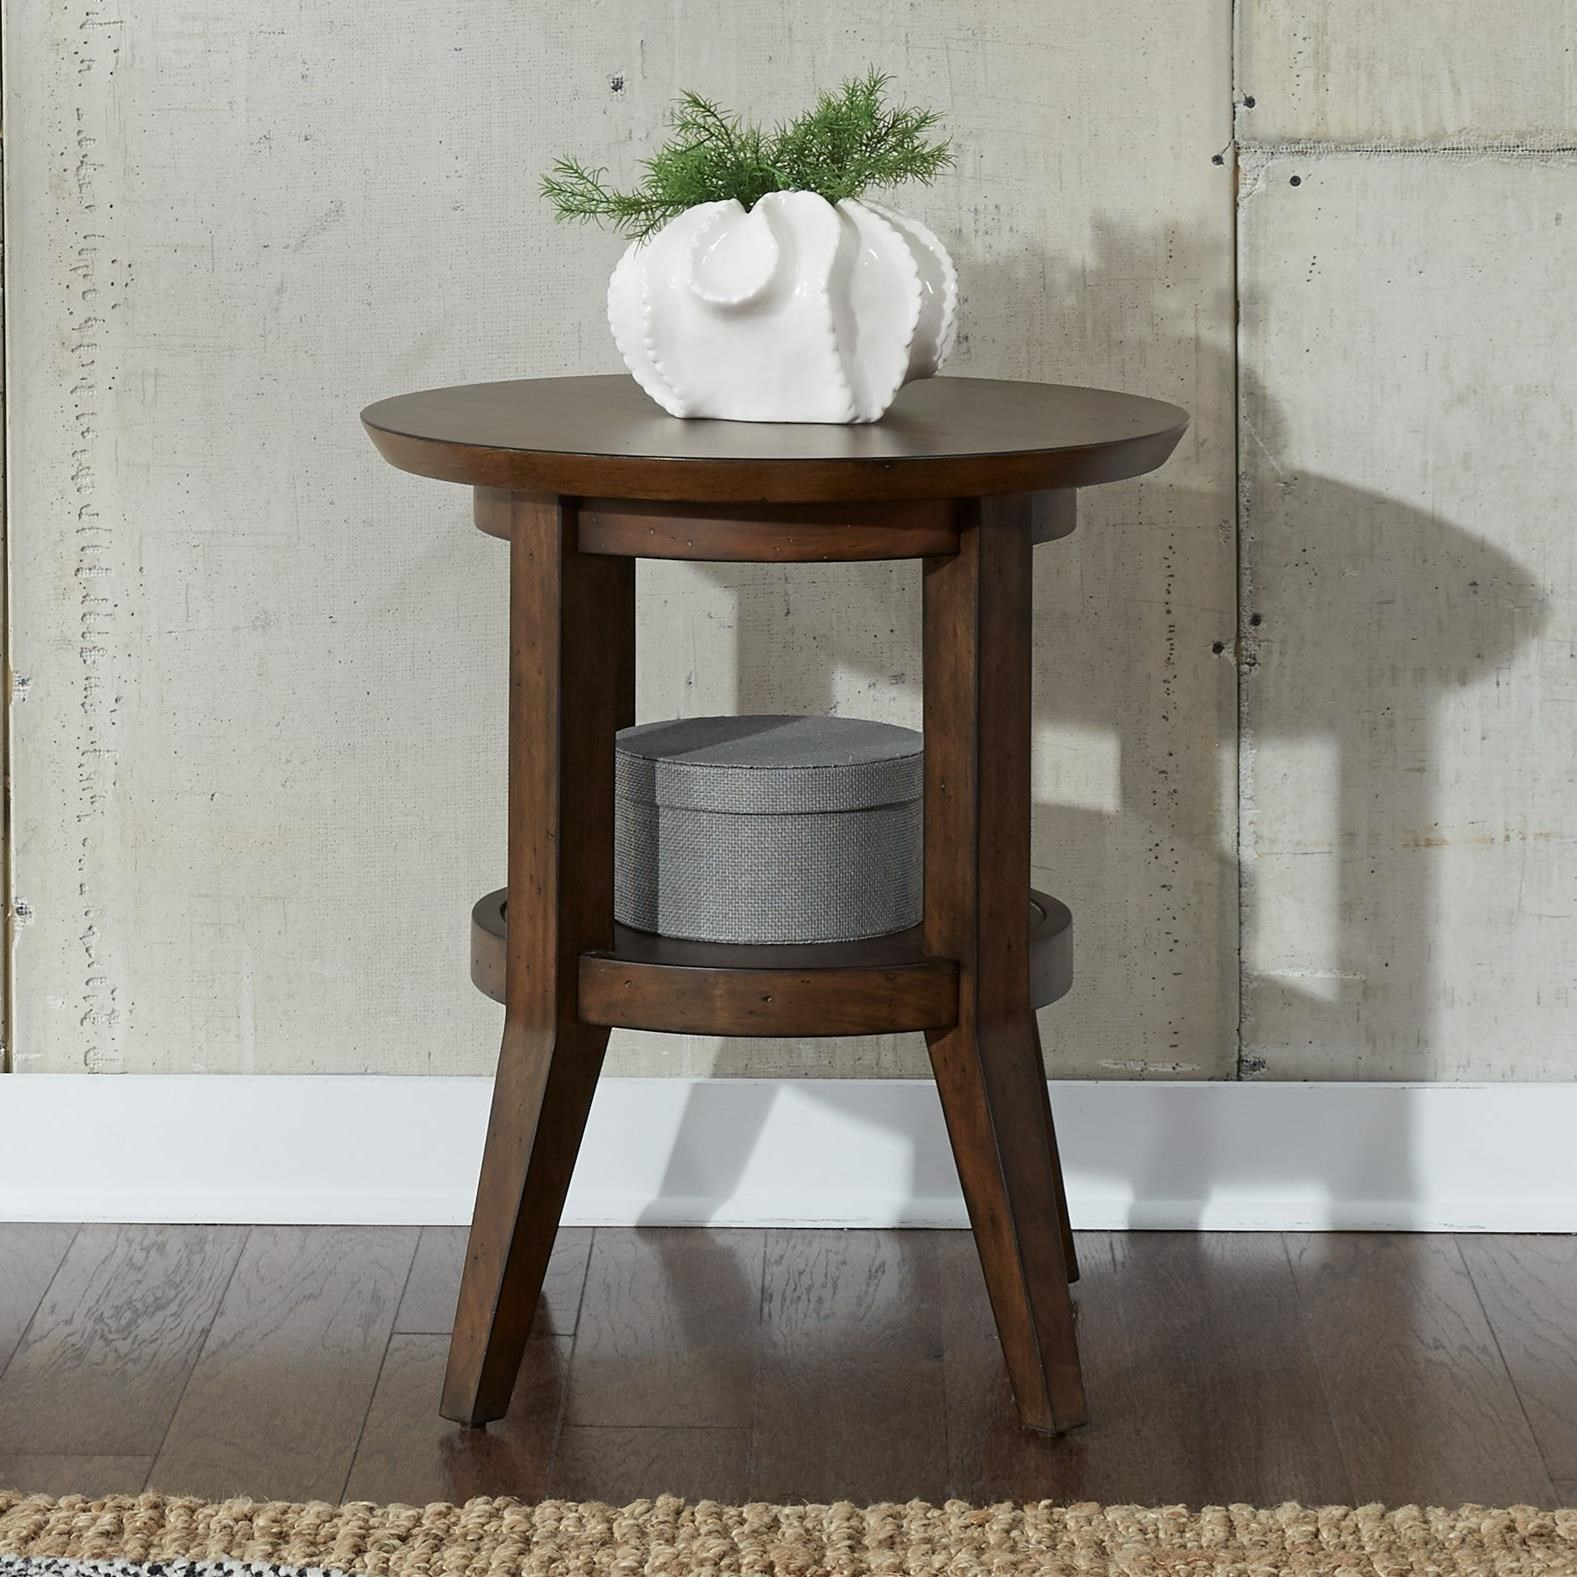 Contemporary Round End Table with Shelf